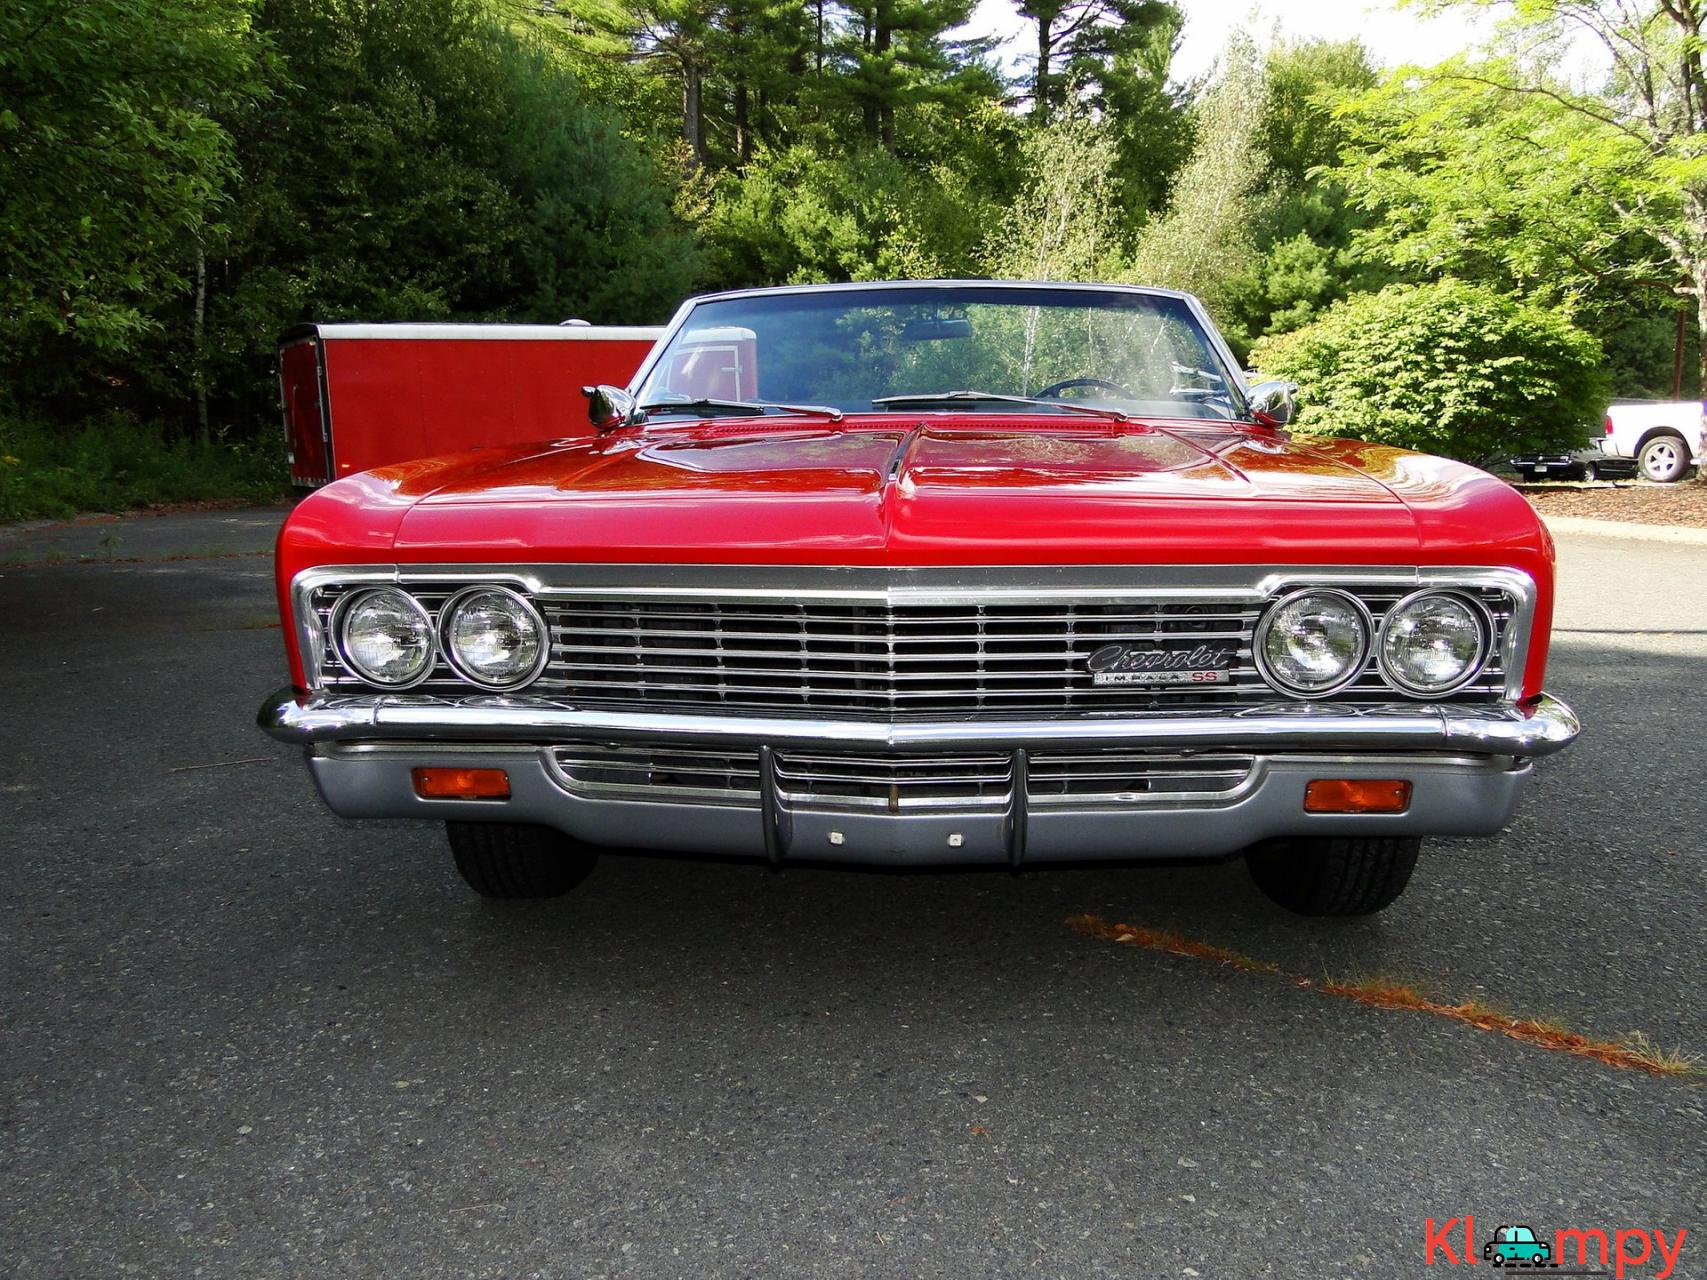 1966 Chevrolet Impala SS Convertible Regal Red V8 - 3/23